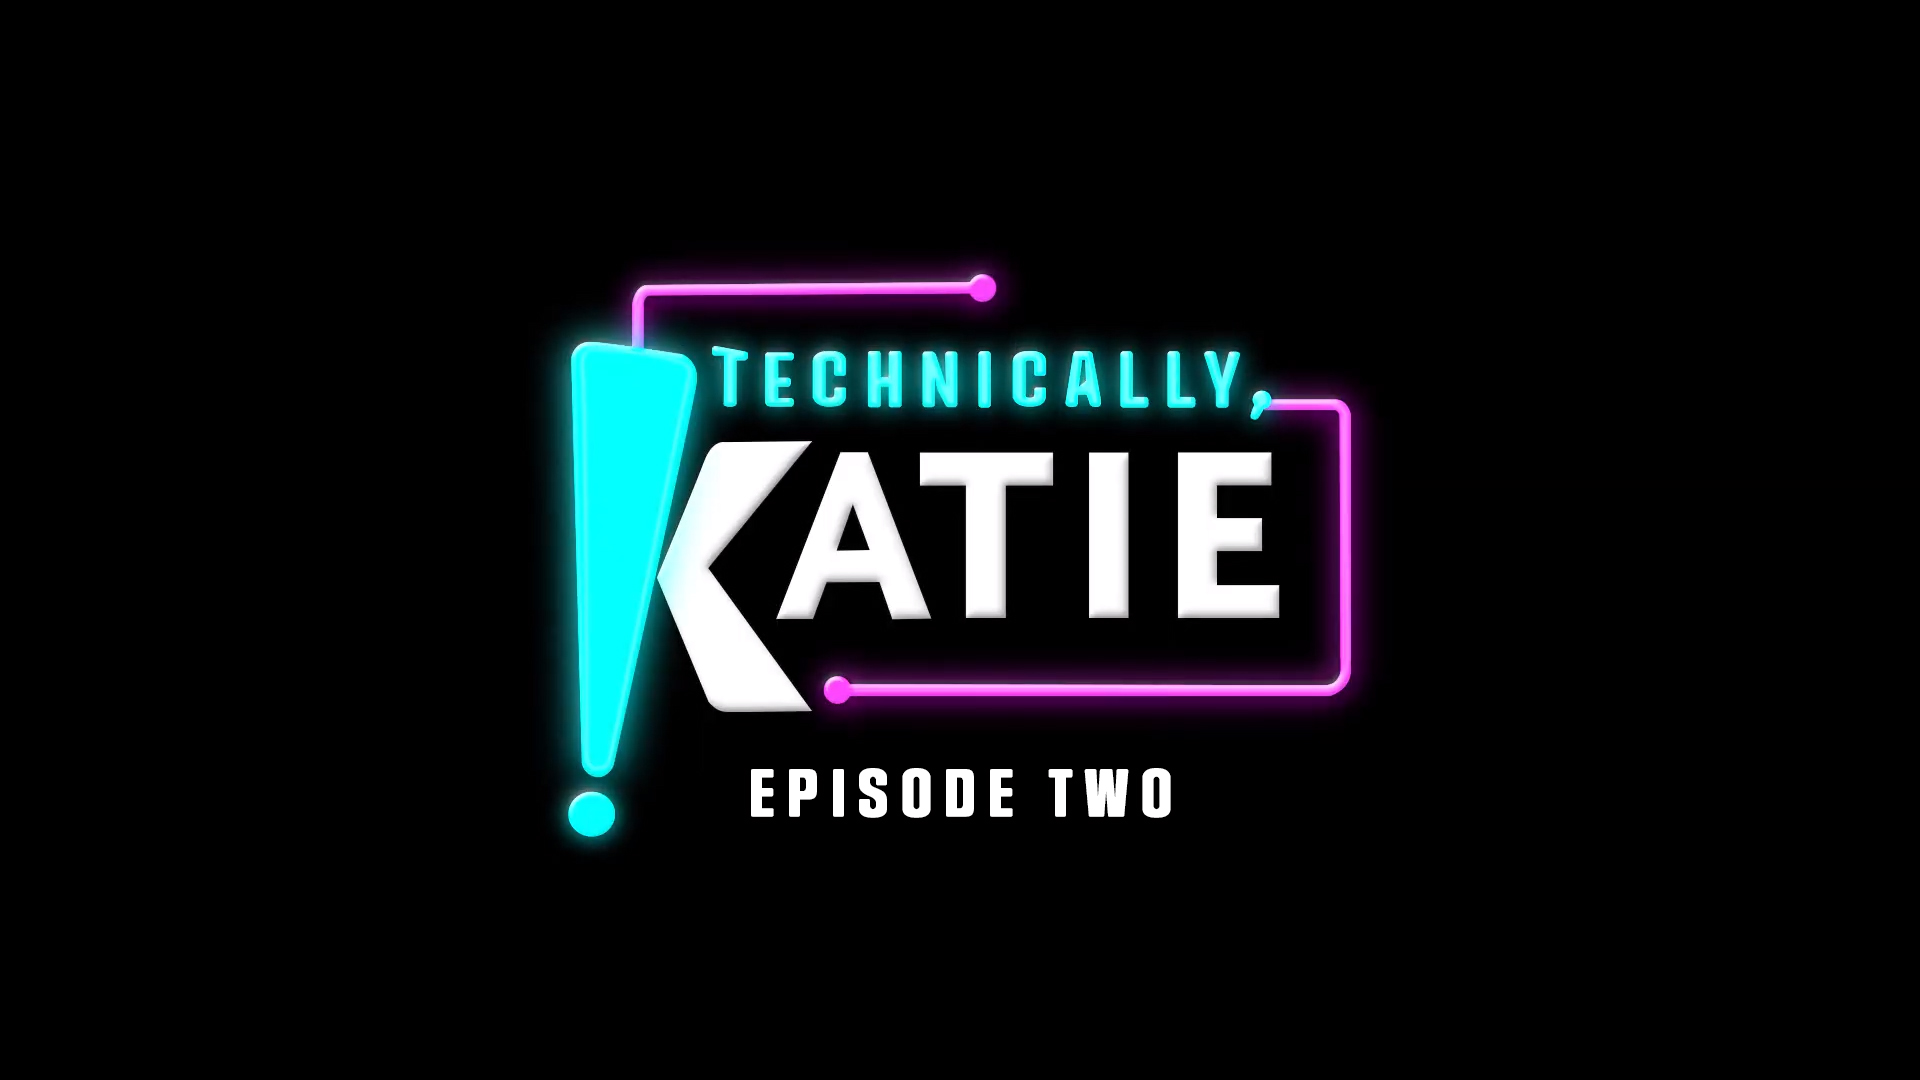 """TECHNICALLY, KATIE"": EPISODE 2 - PINK JEEP TOUR, FATHER'S DAY GADGETS, SAS GLOBAL FORUM"